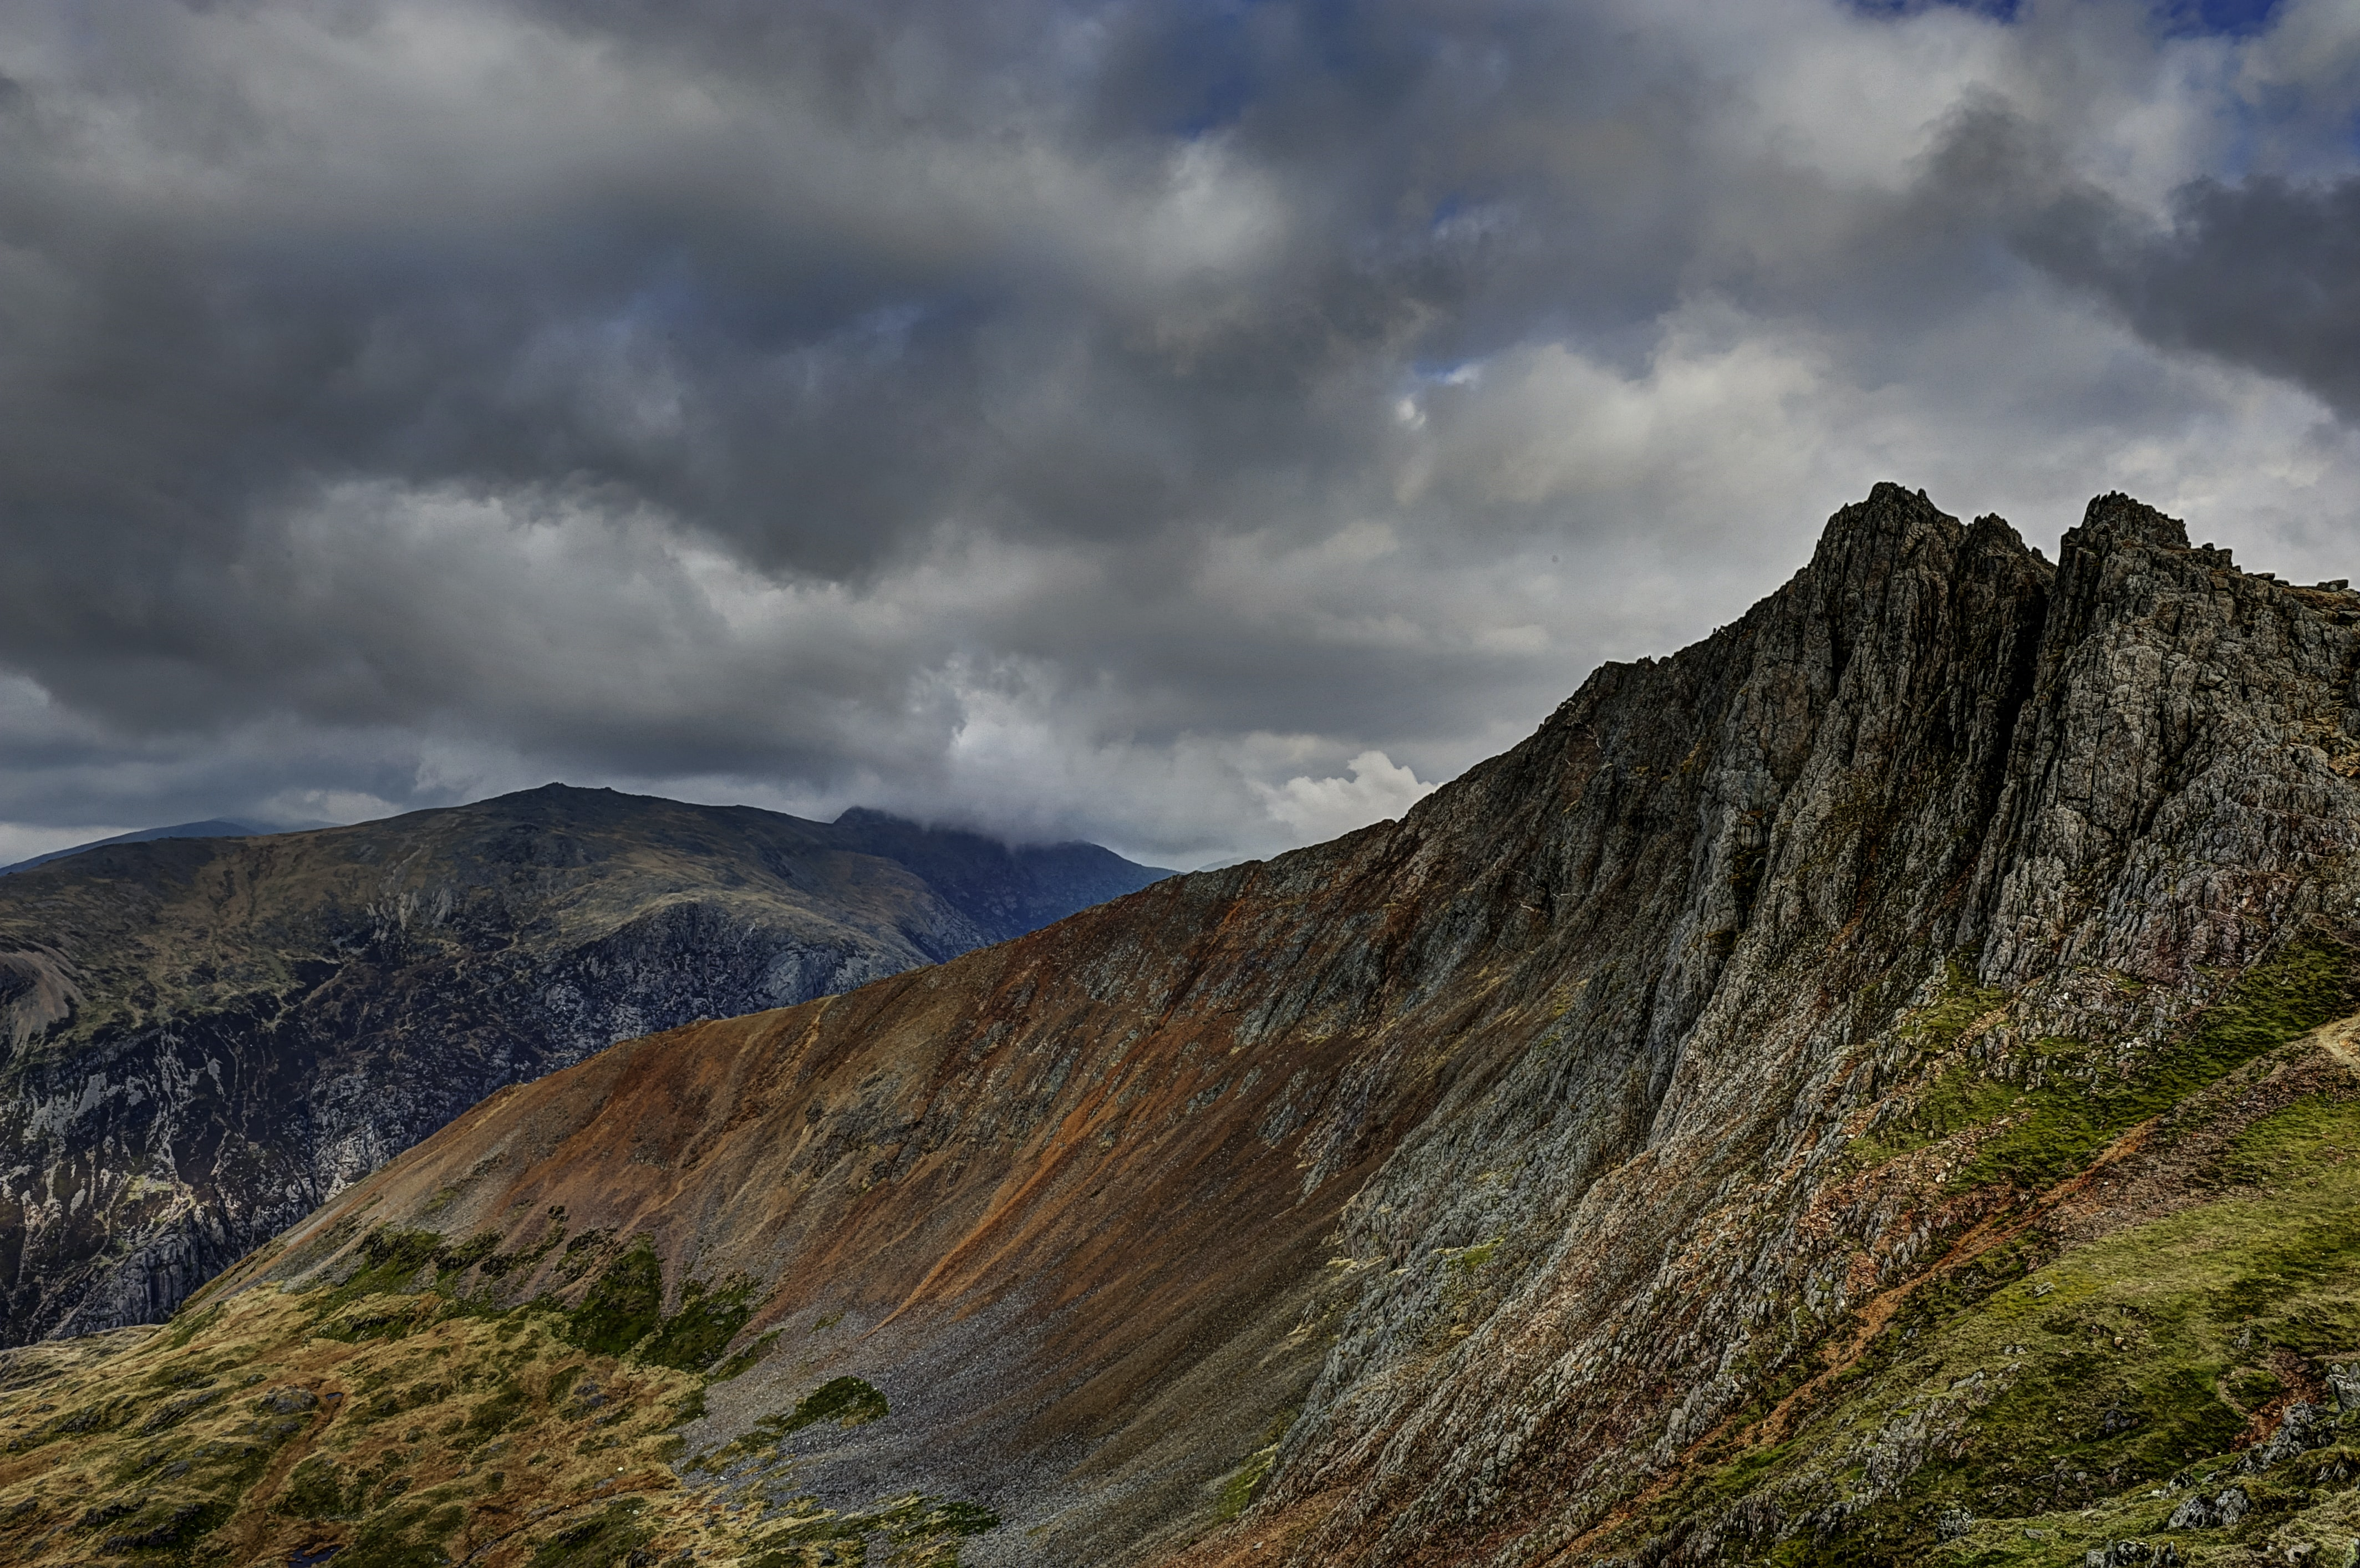 Jagged rocks and moss-covered slopes in Snowdonia National Park